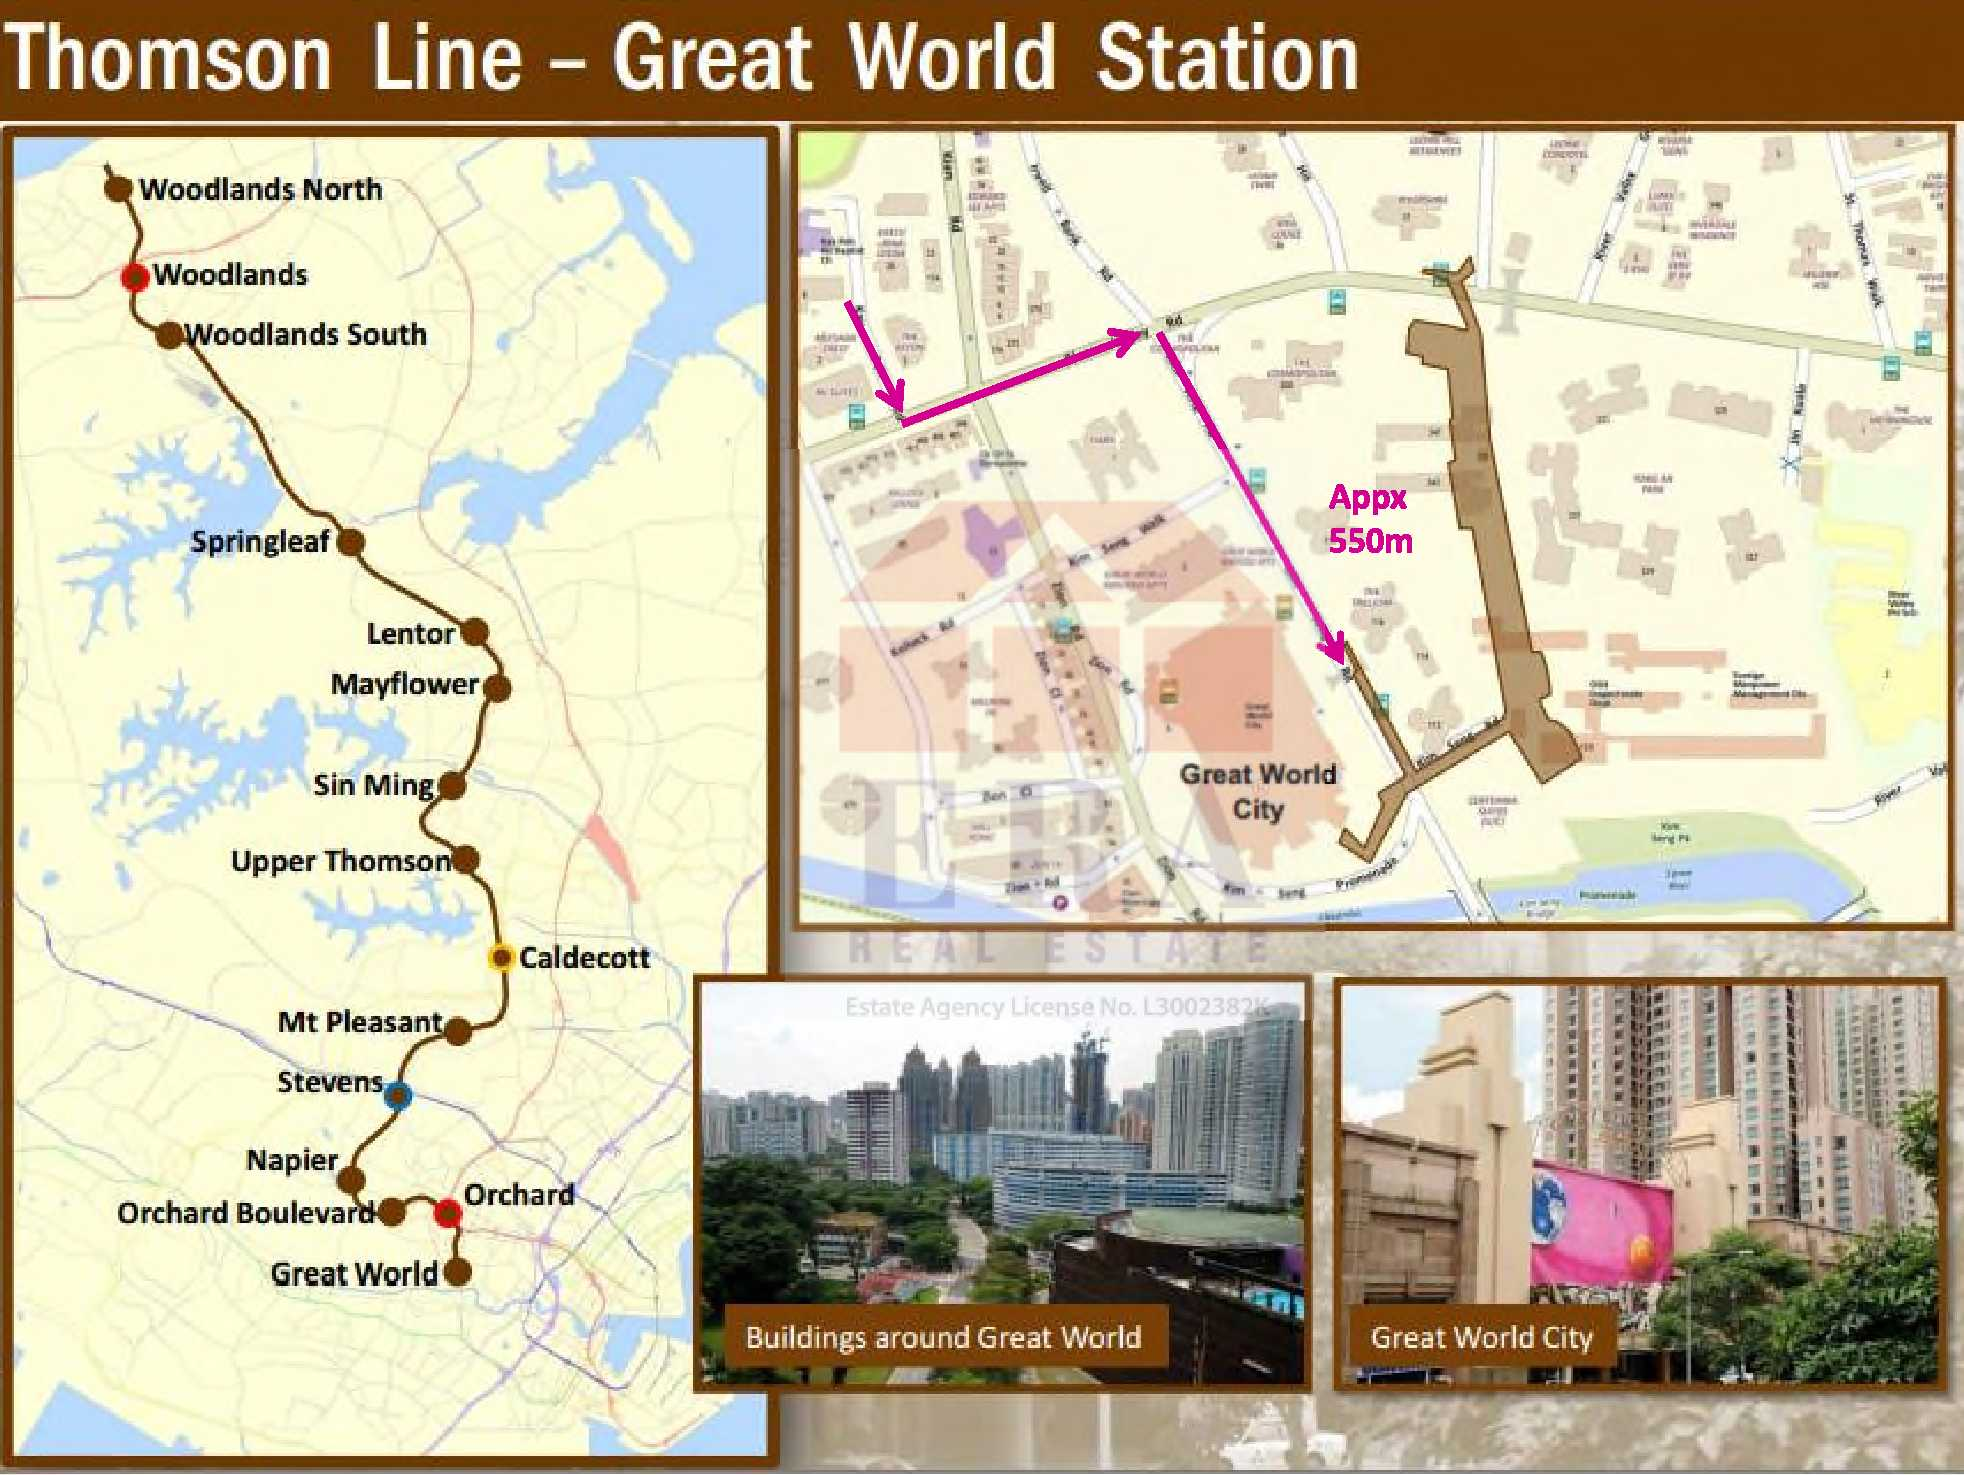 Thomson Line - Great World Station